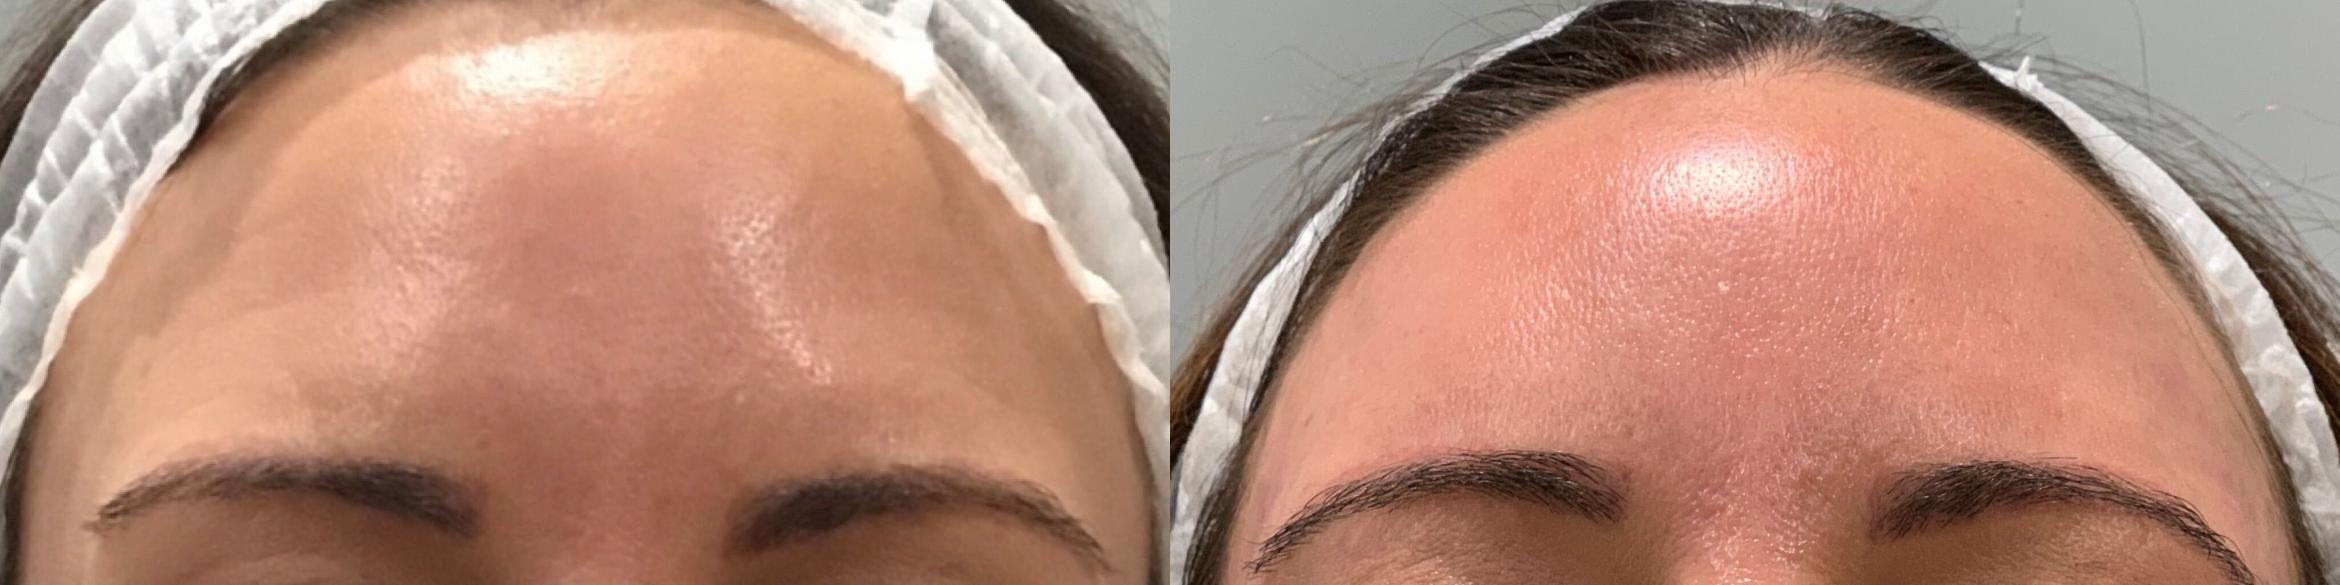 Dermal Fillers Case 13 Before & After Forehead | Sacramento, CA | Destination Aesthetics